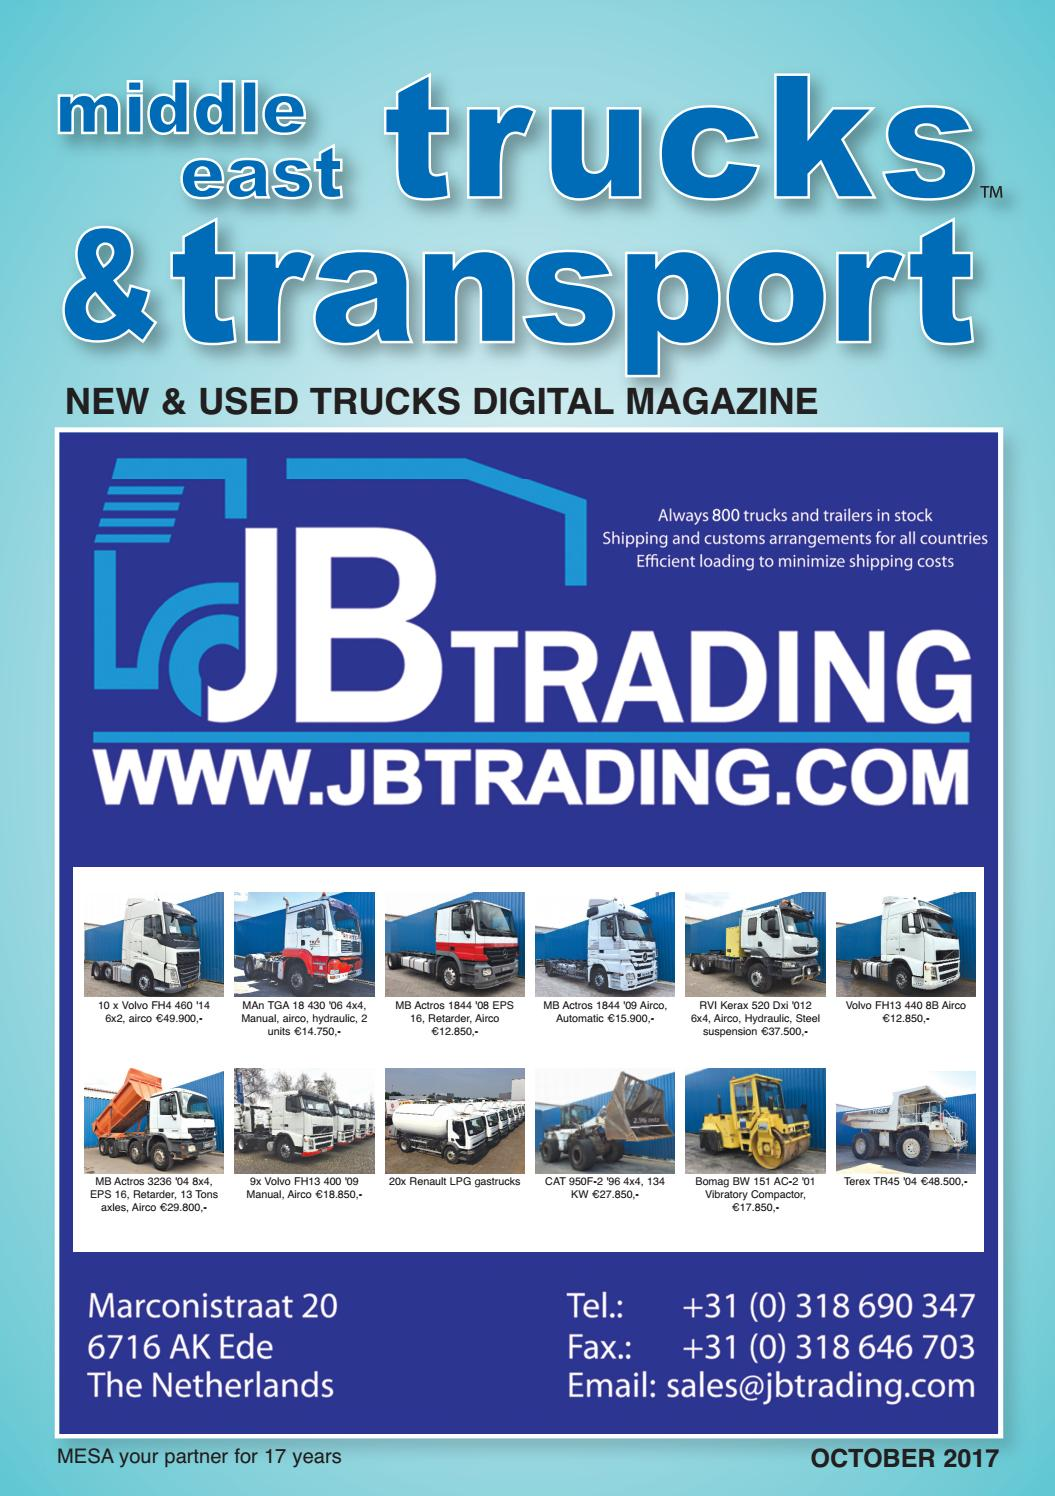 middle east trucks   transport october 2017 edition by middle east trucks   transport issuu 1997 Volvo 850 1995 Volvo 850